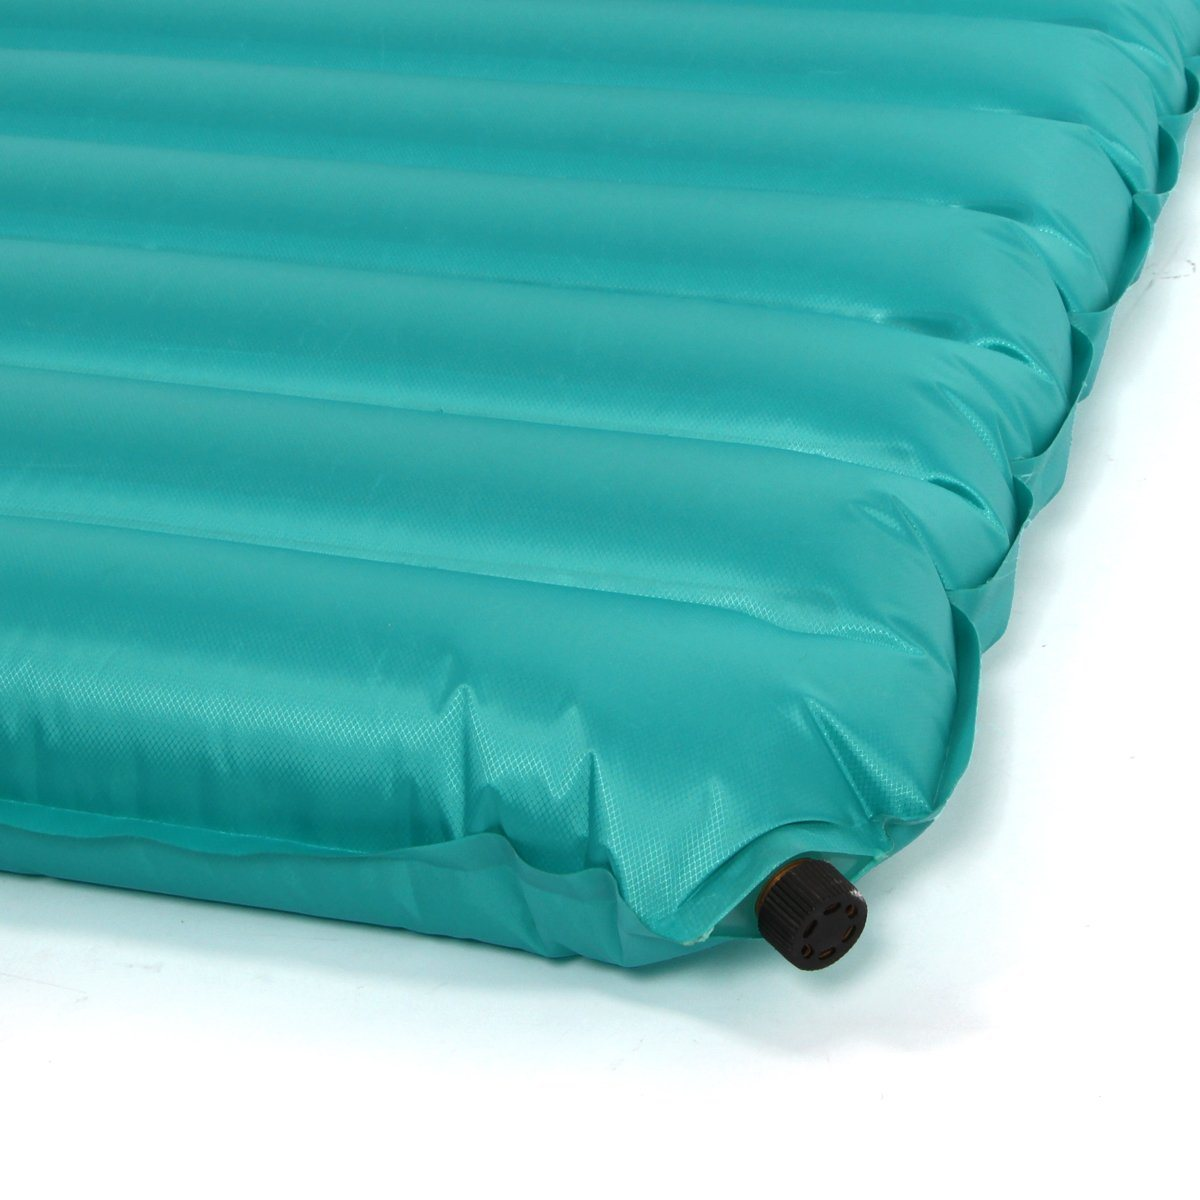 Camping Inflatable Air Mattress with Build-in Pillow.